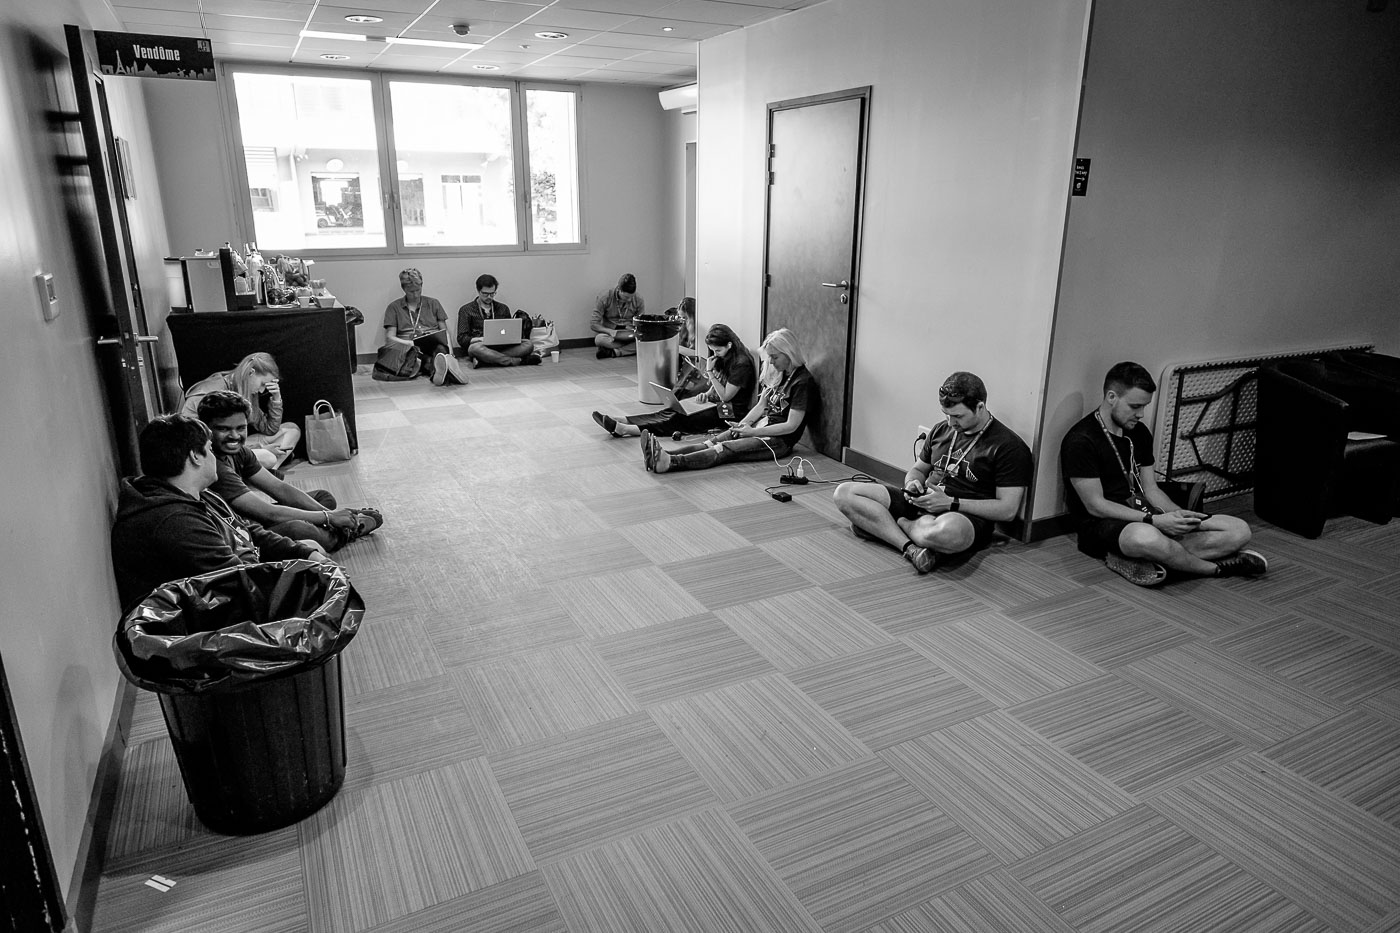 Volunteers sitting on the floor in the hallway backstage area